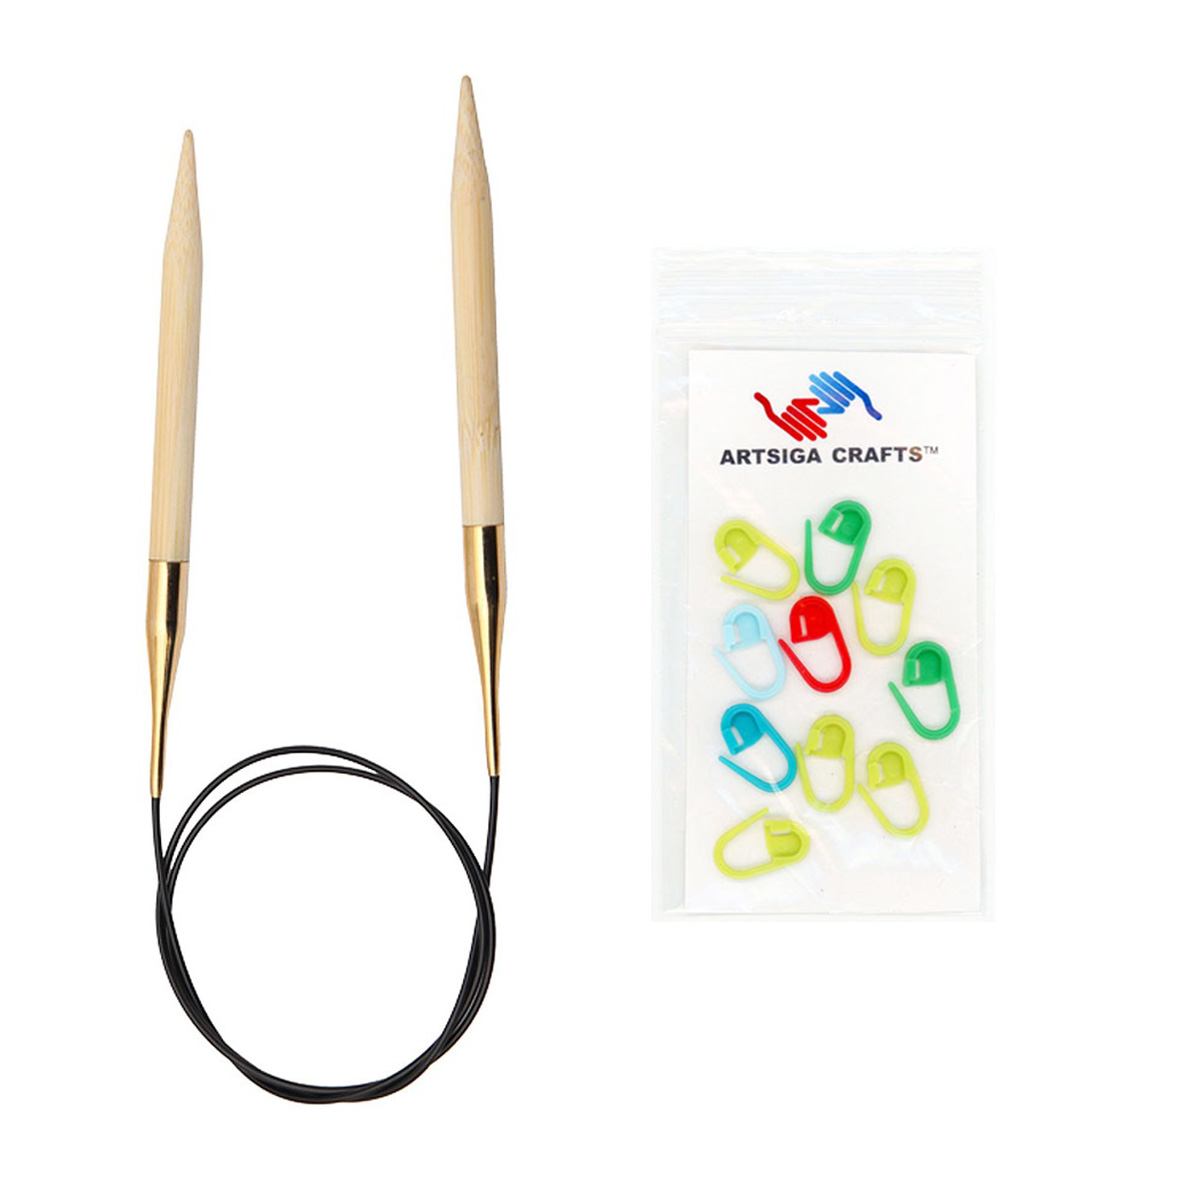 Knitter's Pride Bundle: Bamboo Circular 40-inch (100cm) Knitting Needles + 10 Artsiga Crafts Stitch Markers